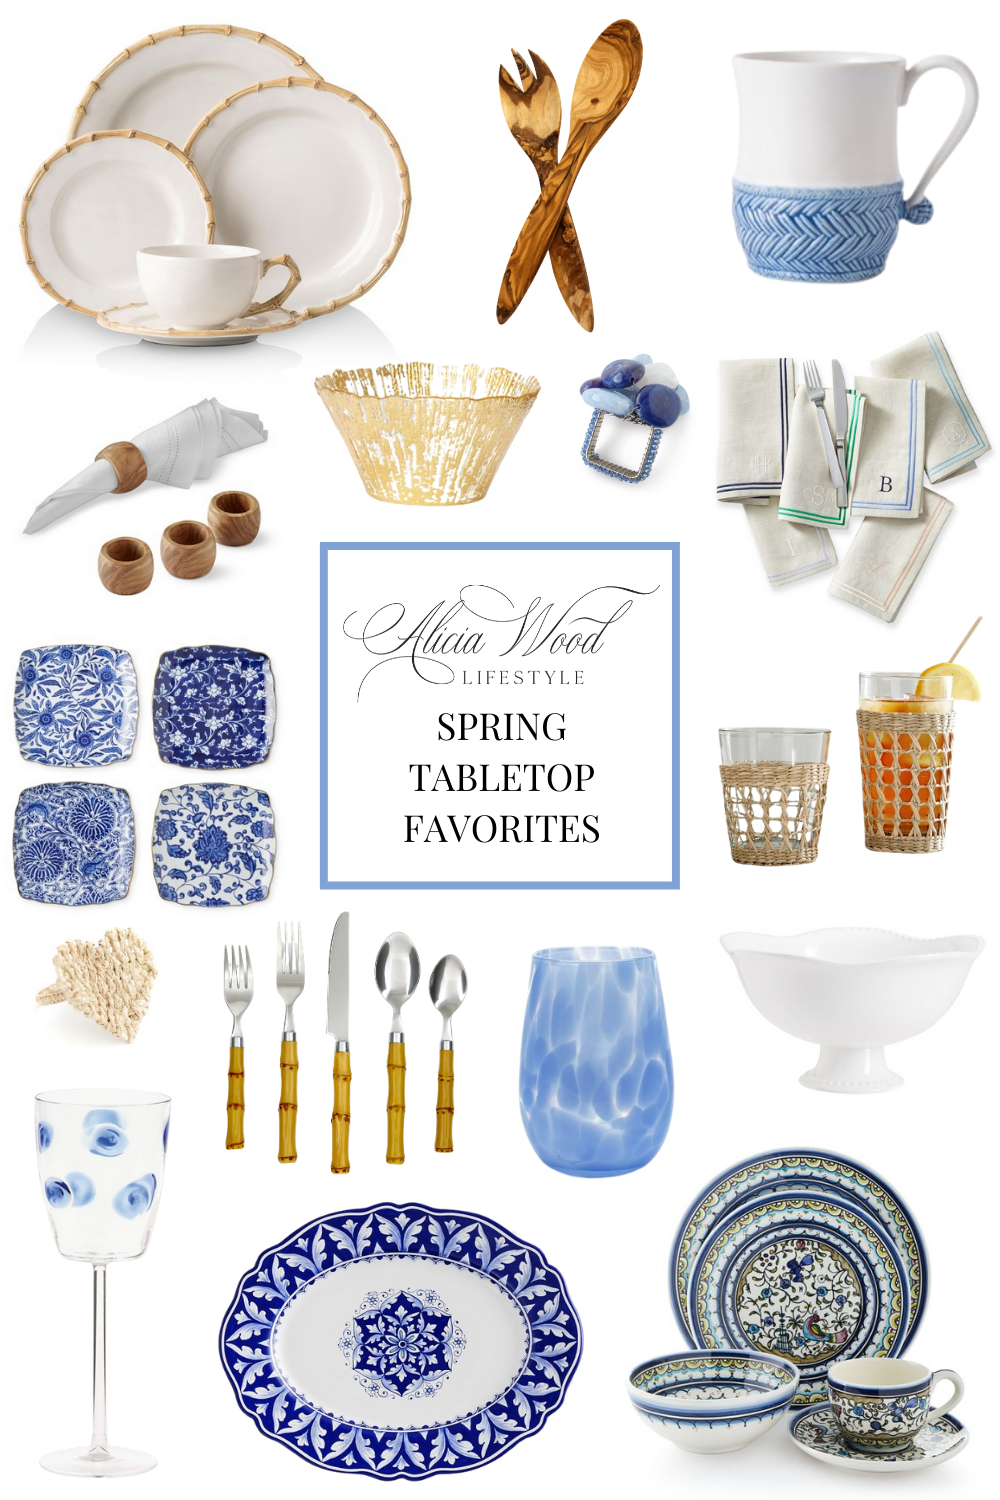 AWL-Spring Boutique Tabletop